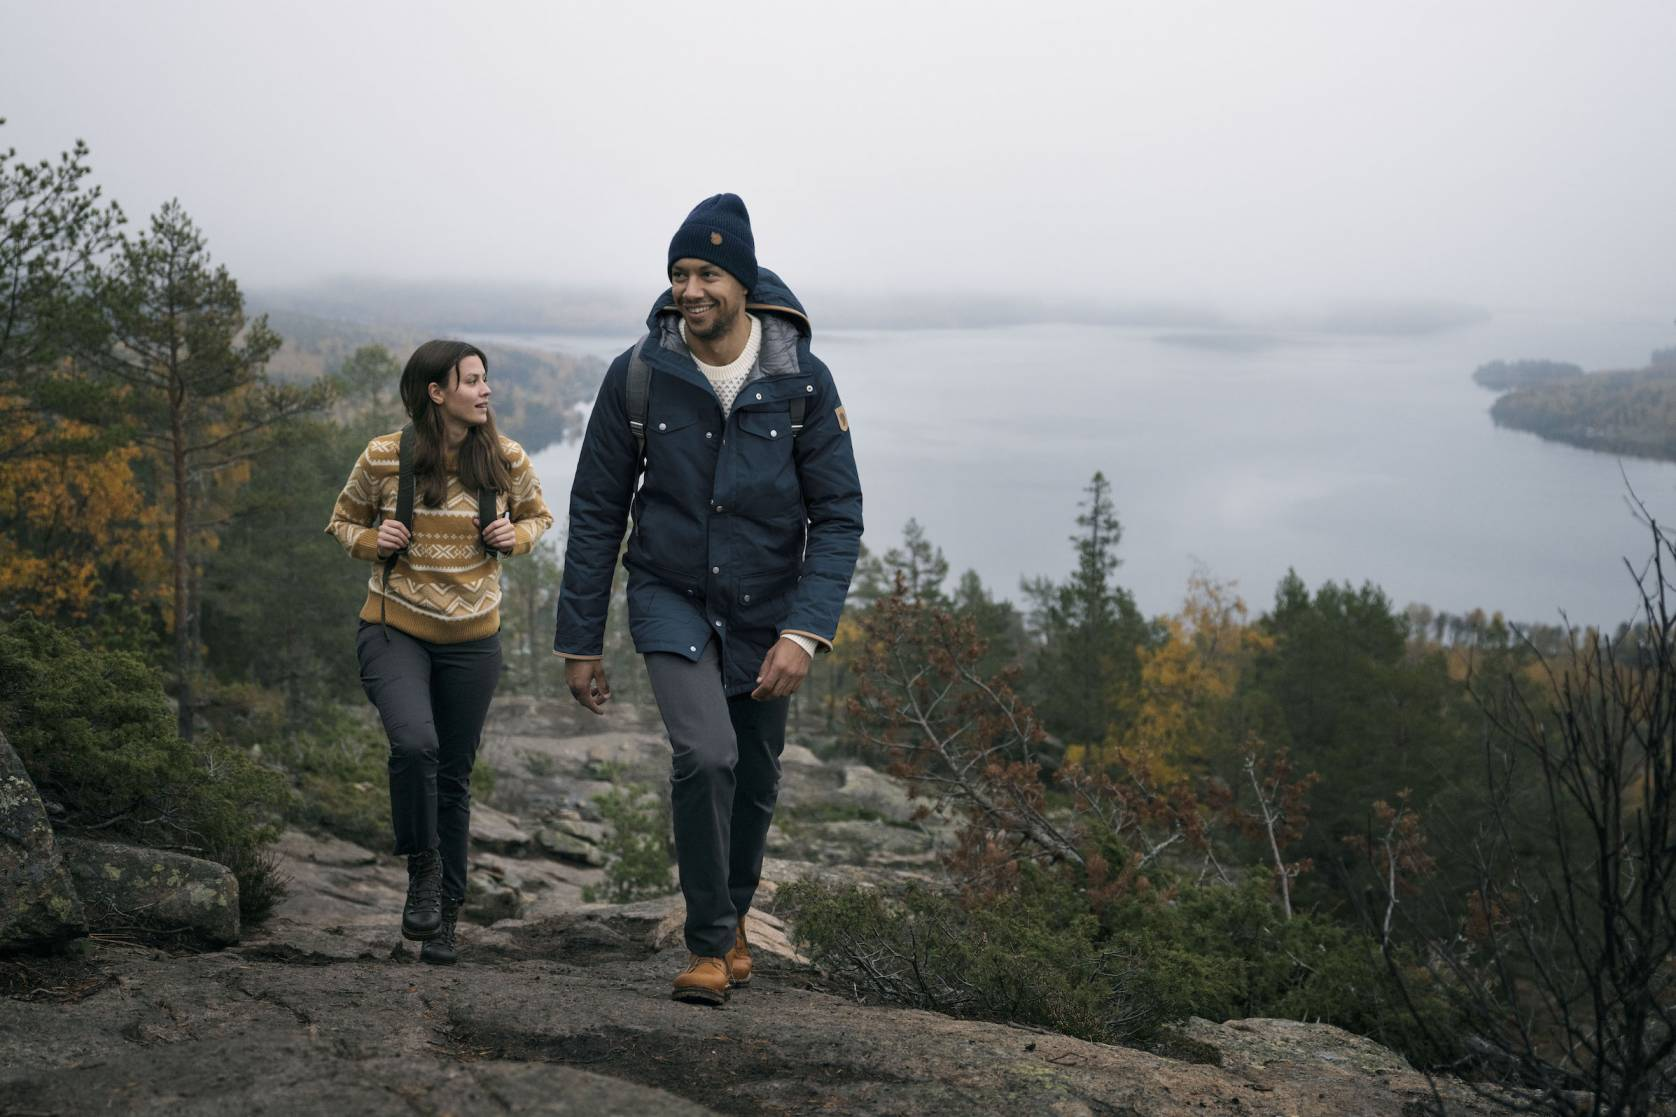 Fjallraven fall hiking